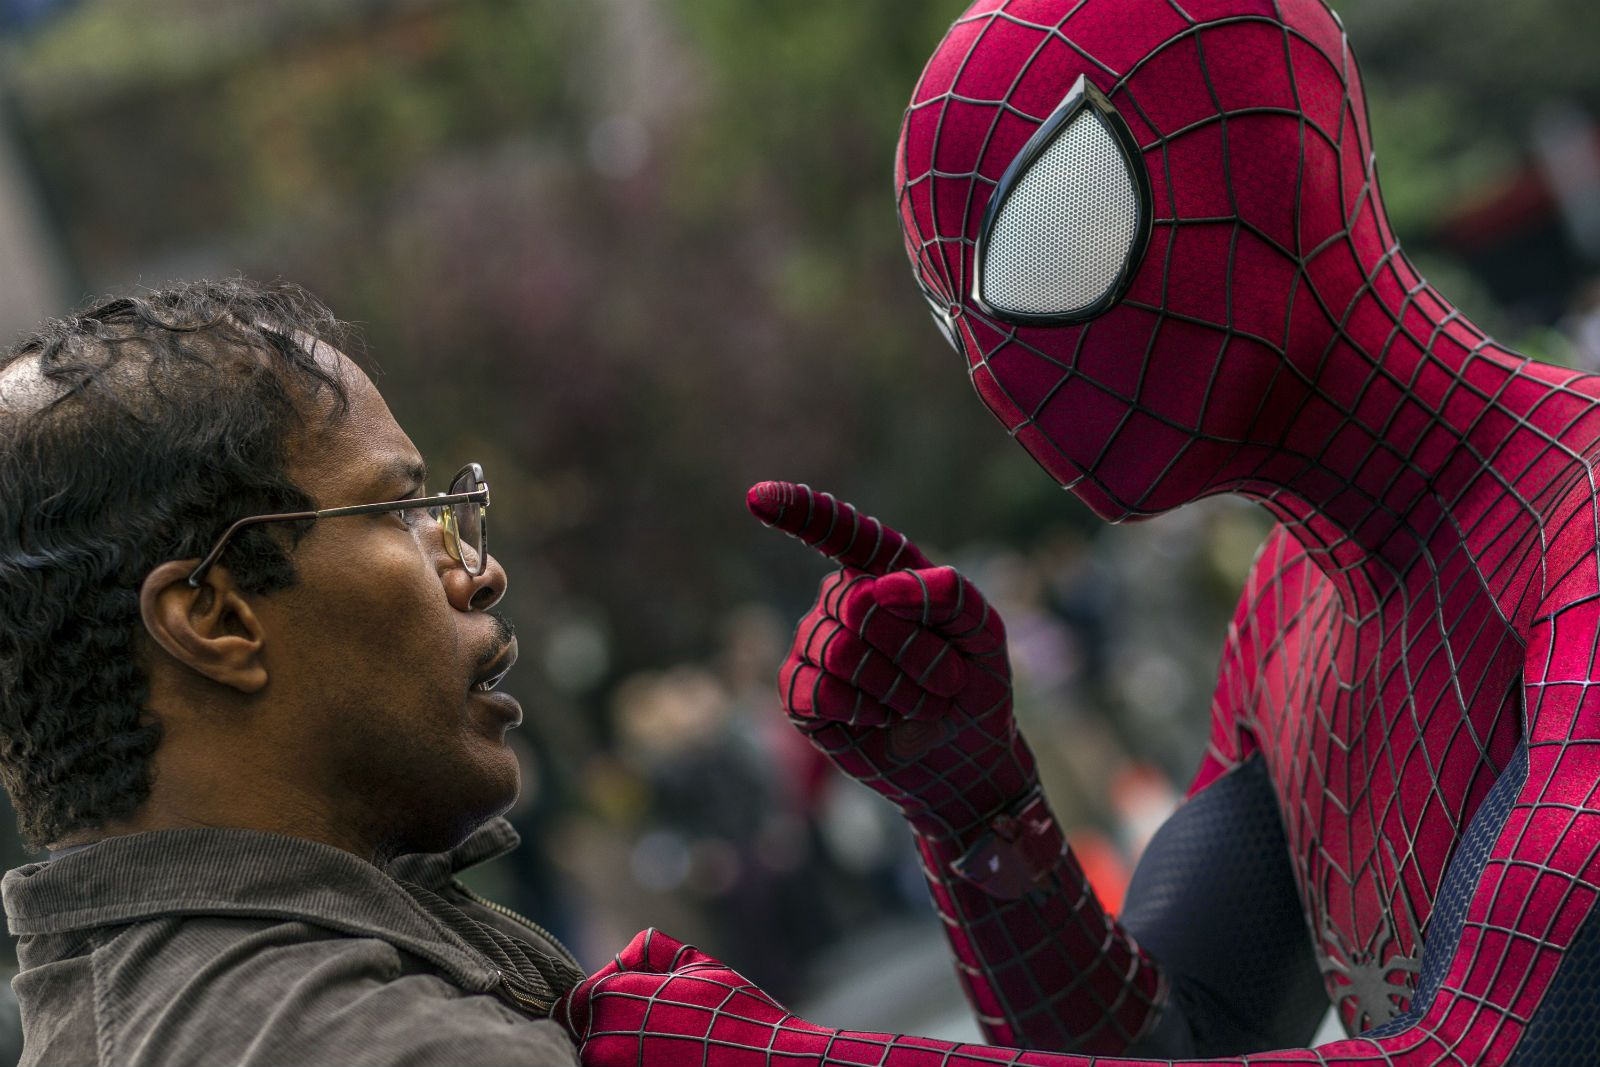 An image from The Amazing Spider-Man 2